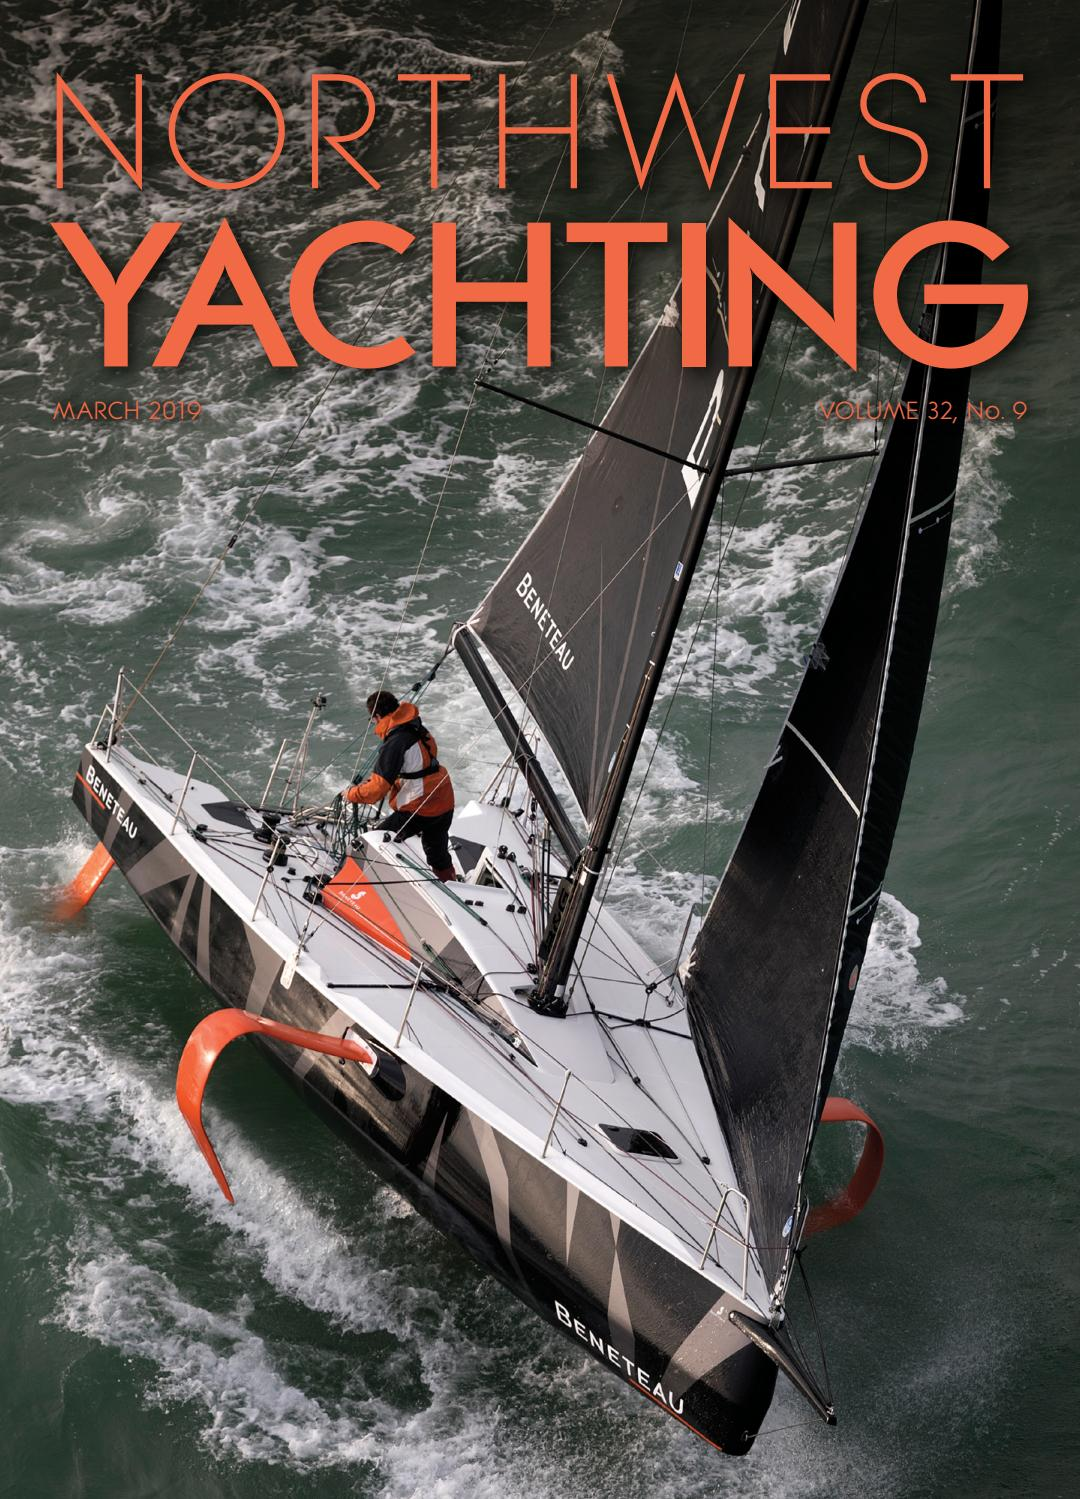 Northwest Yachting March 2019 by Northwest Yachting - issuu on